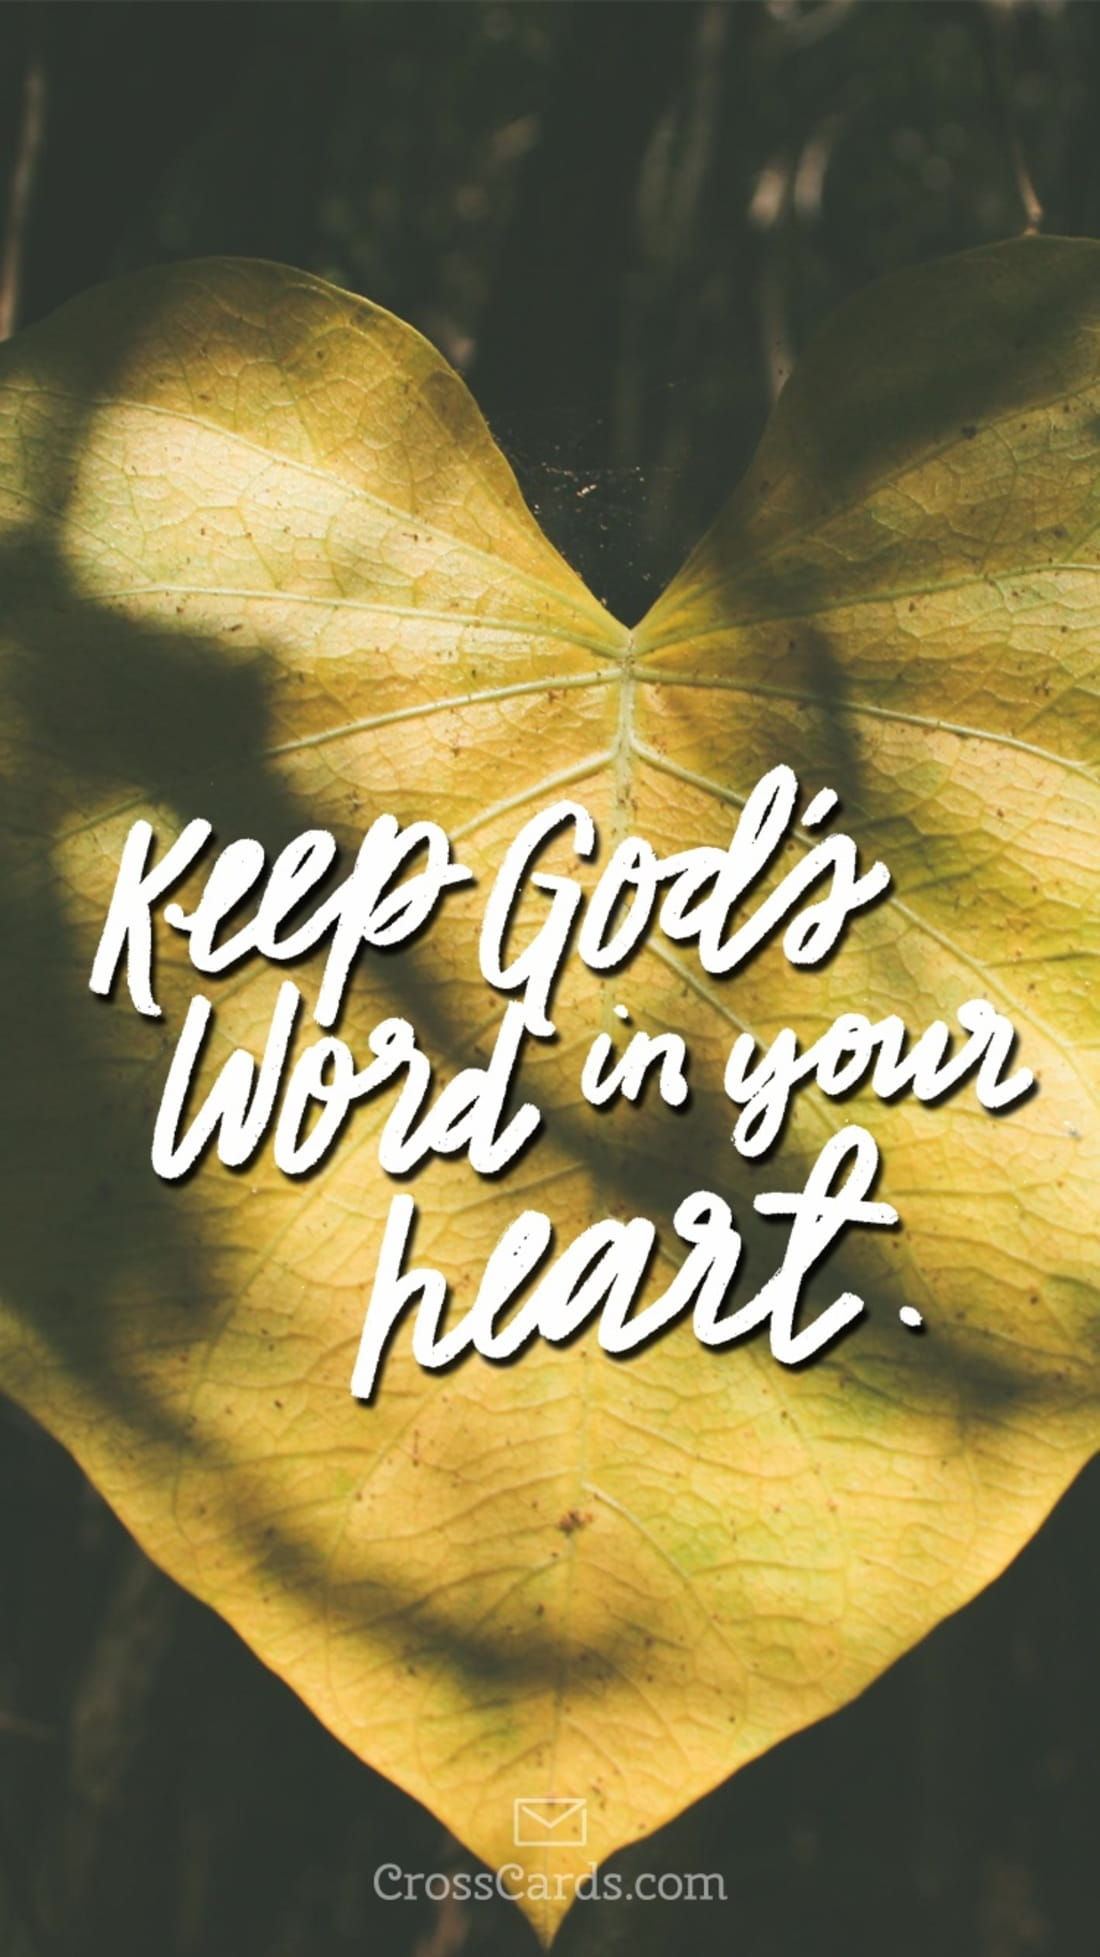 Keep God's Word in Your Heart mobile phone wallpaper